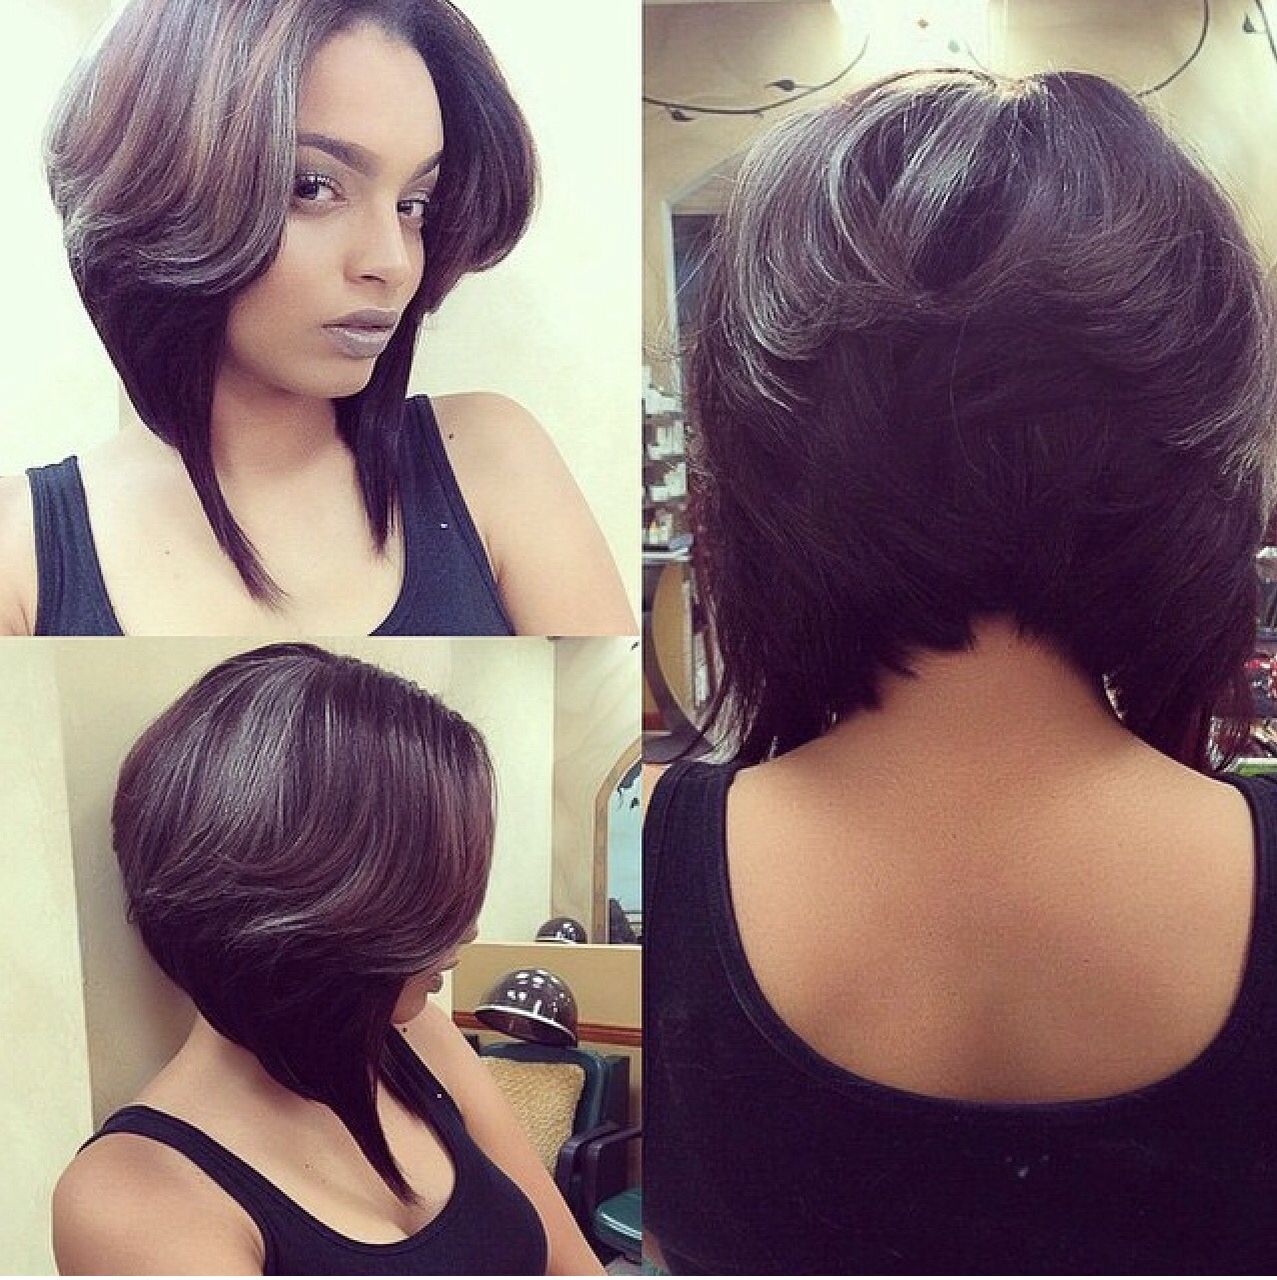 slayed bob cut | ✂☆*bob life* ☆✂ | pinterest | bob cut, bobs